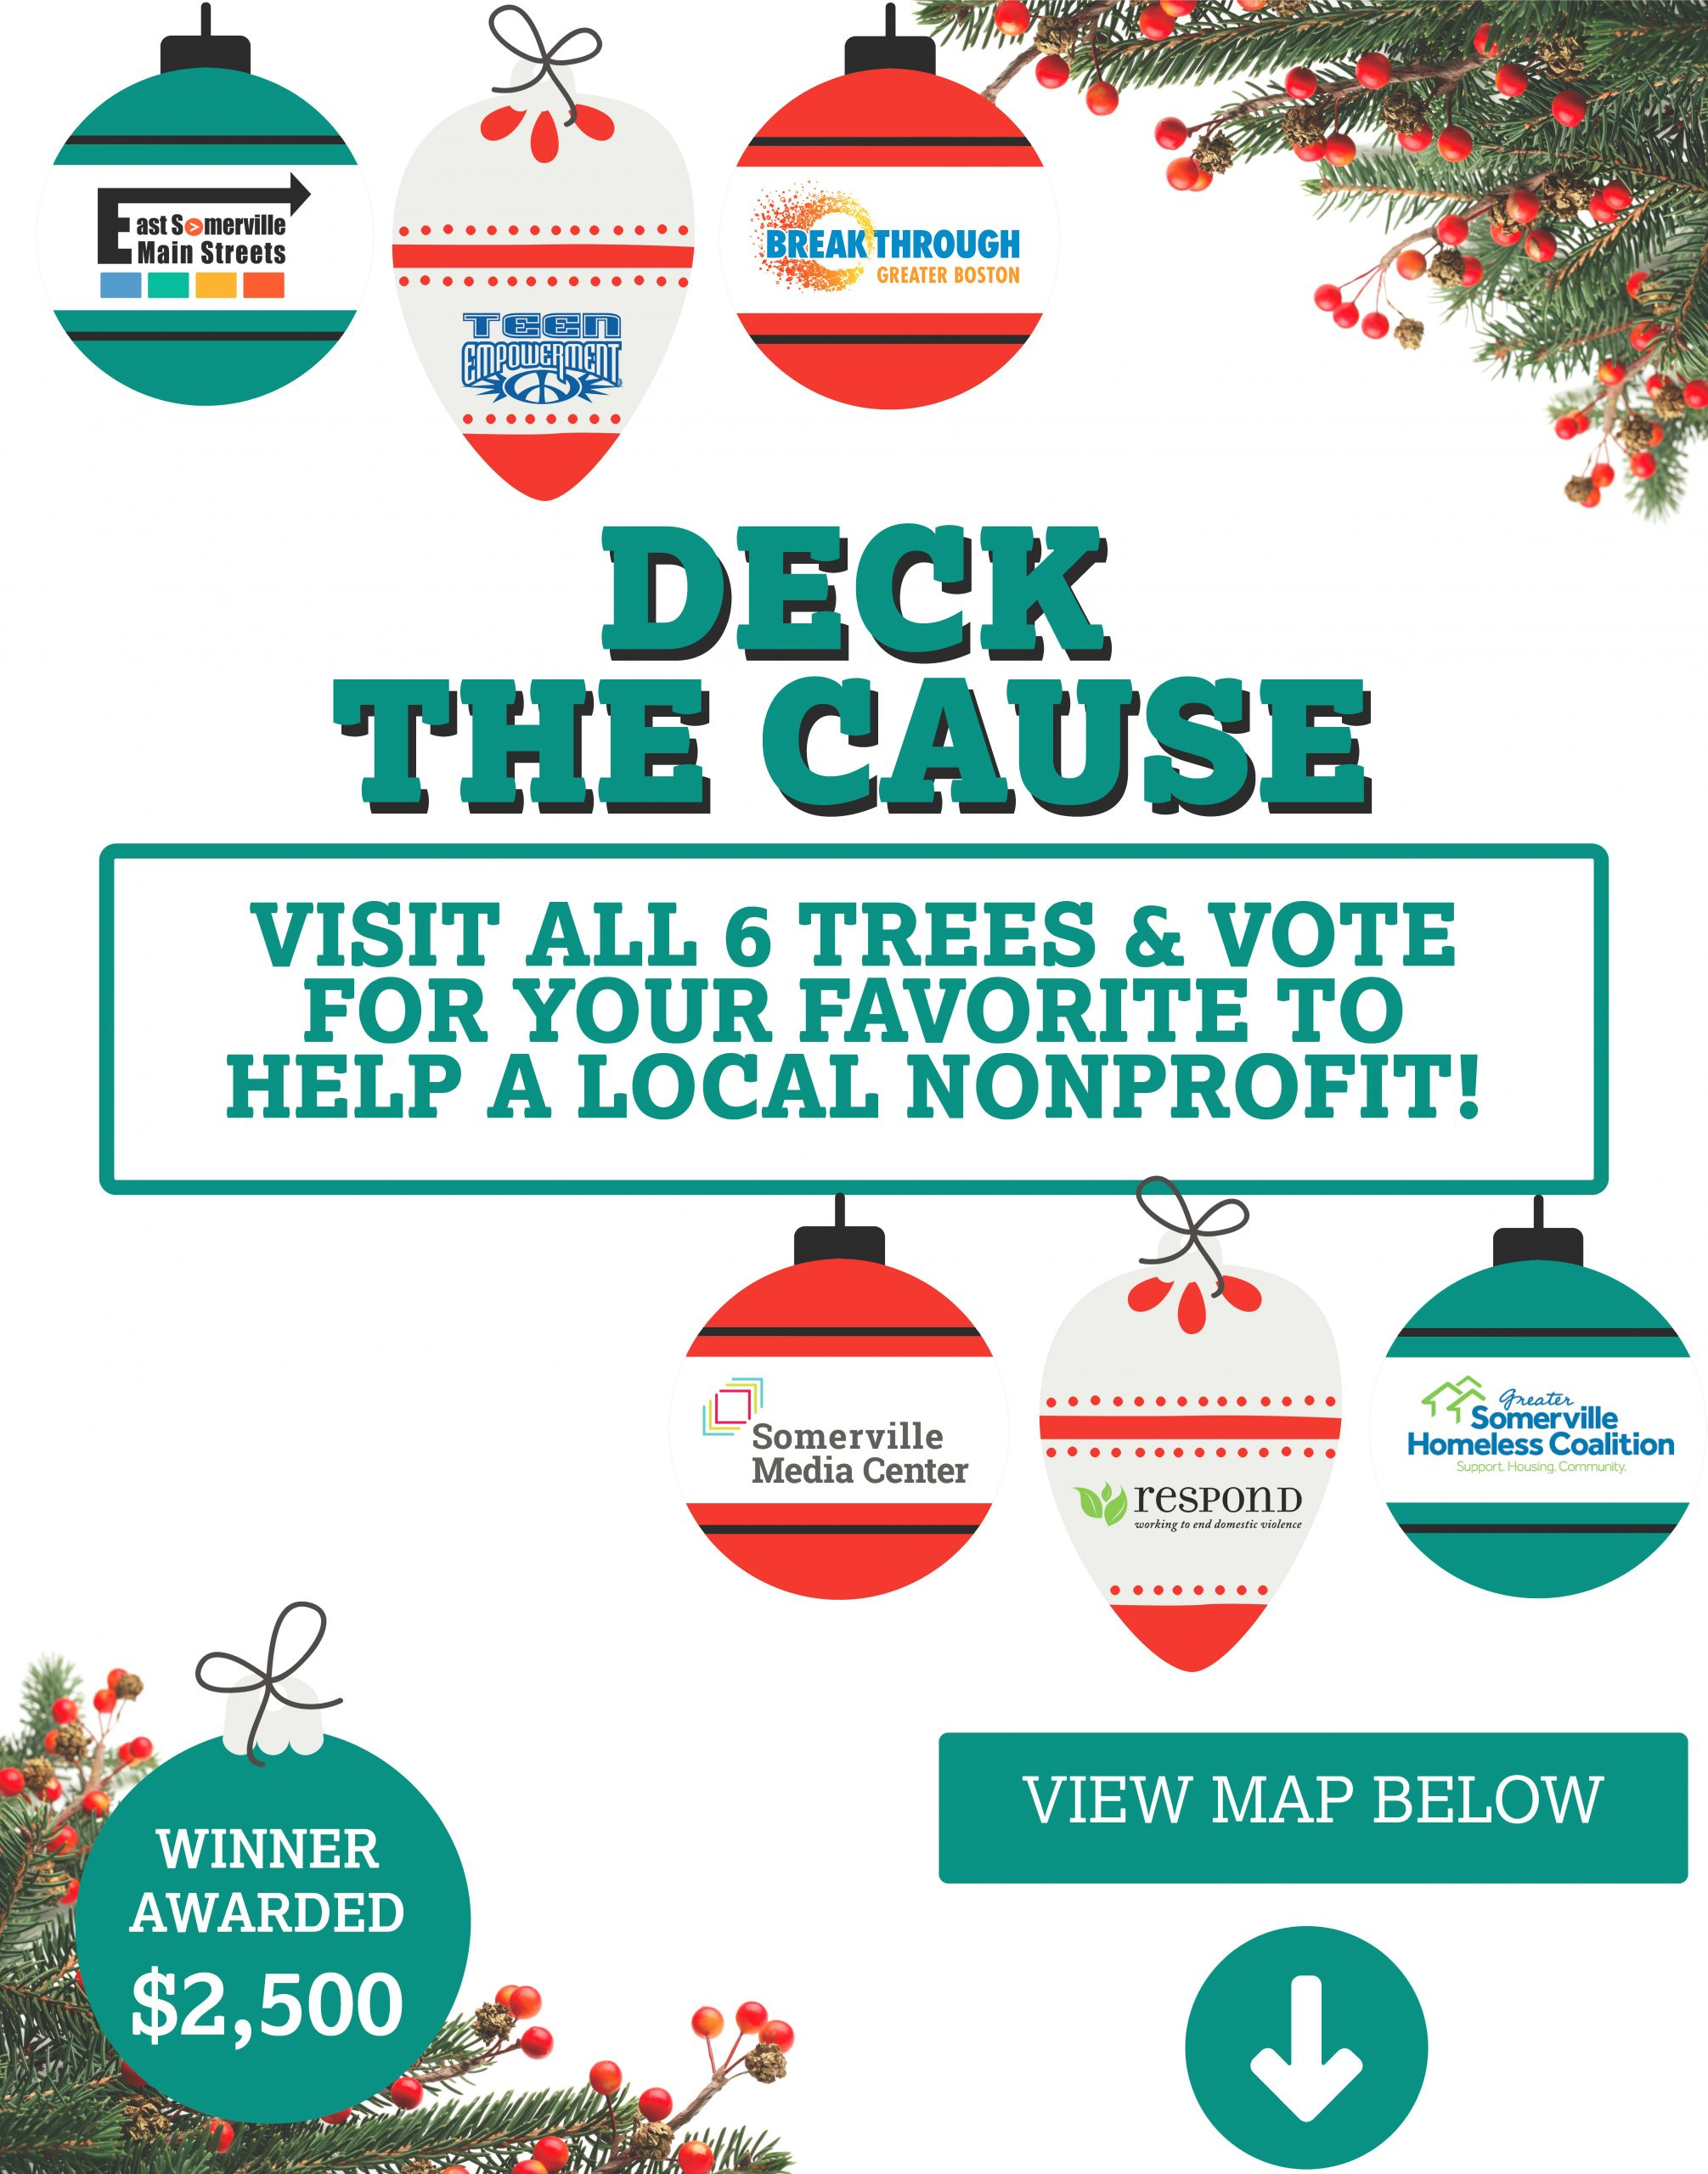 Deck the Cause - digital assets_Page_2